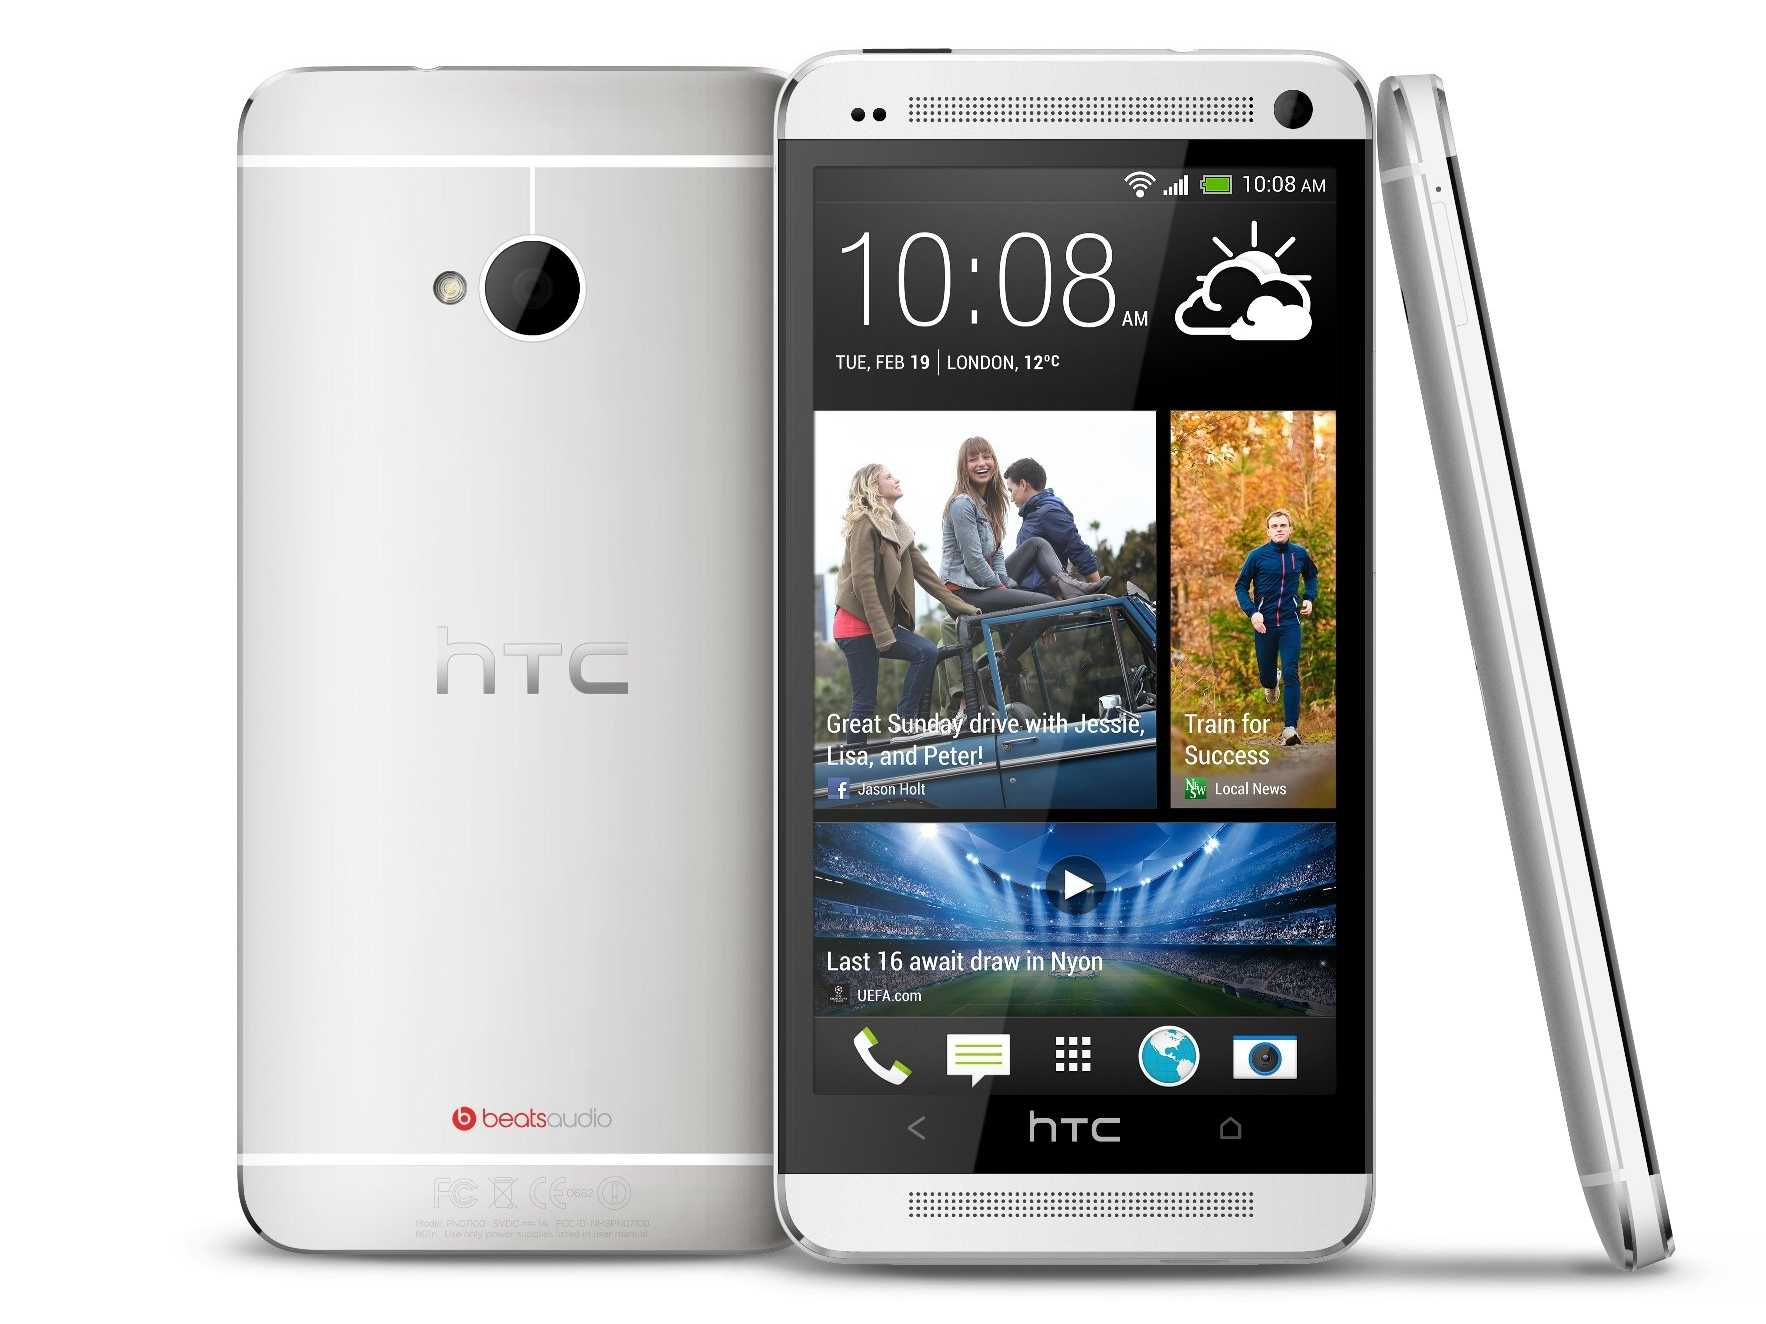 HTC Top Android Phones